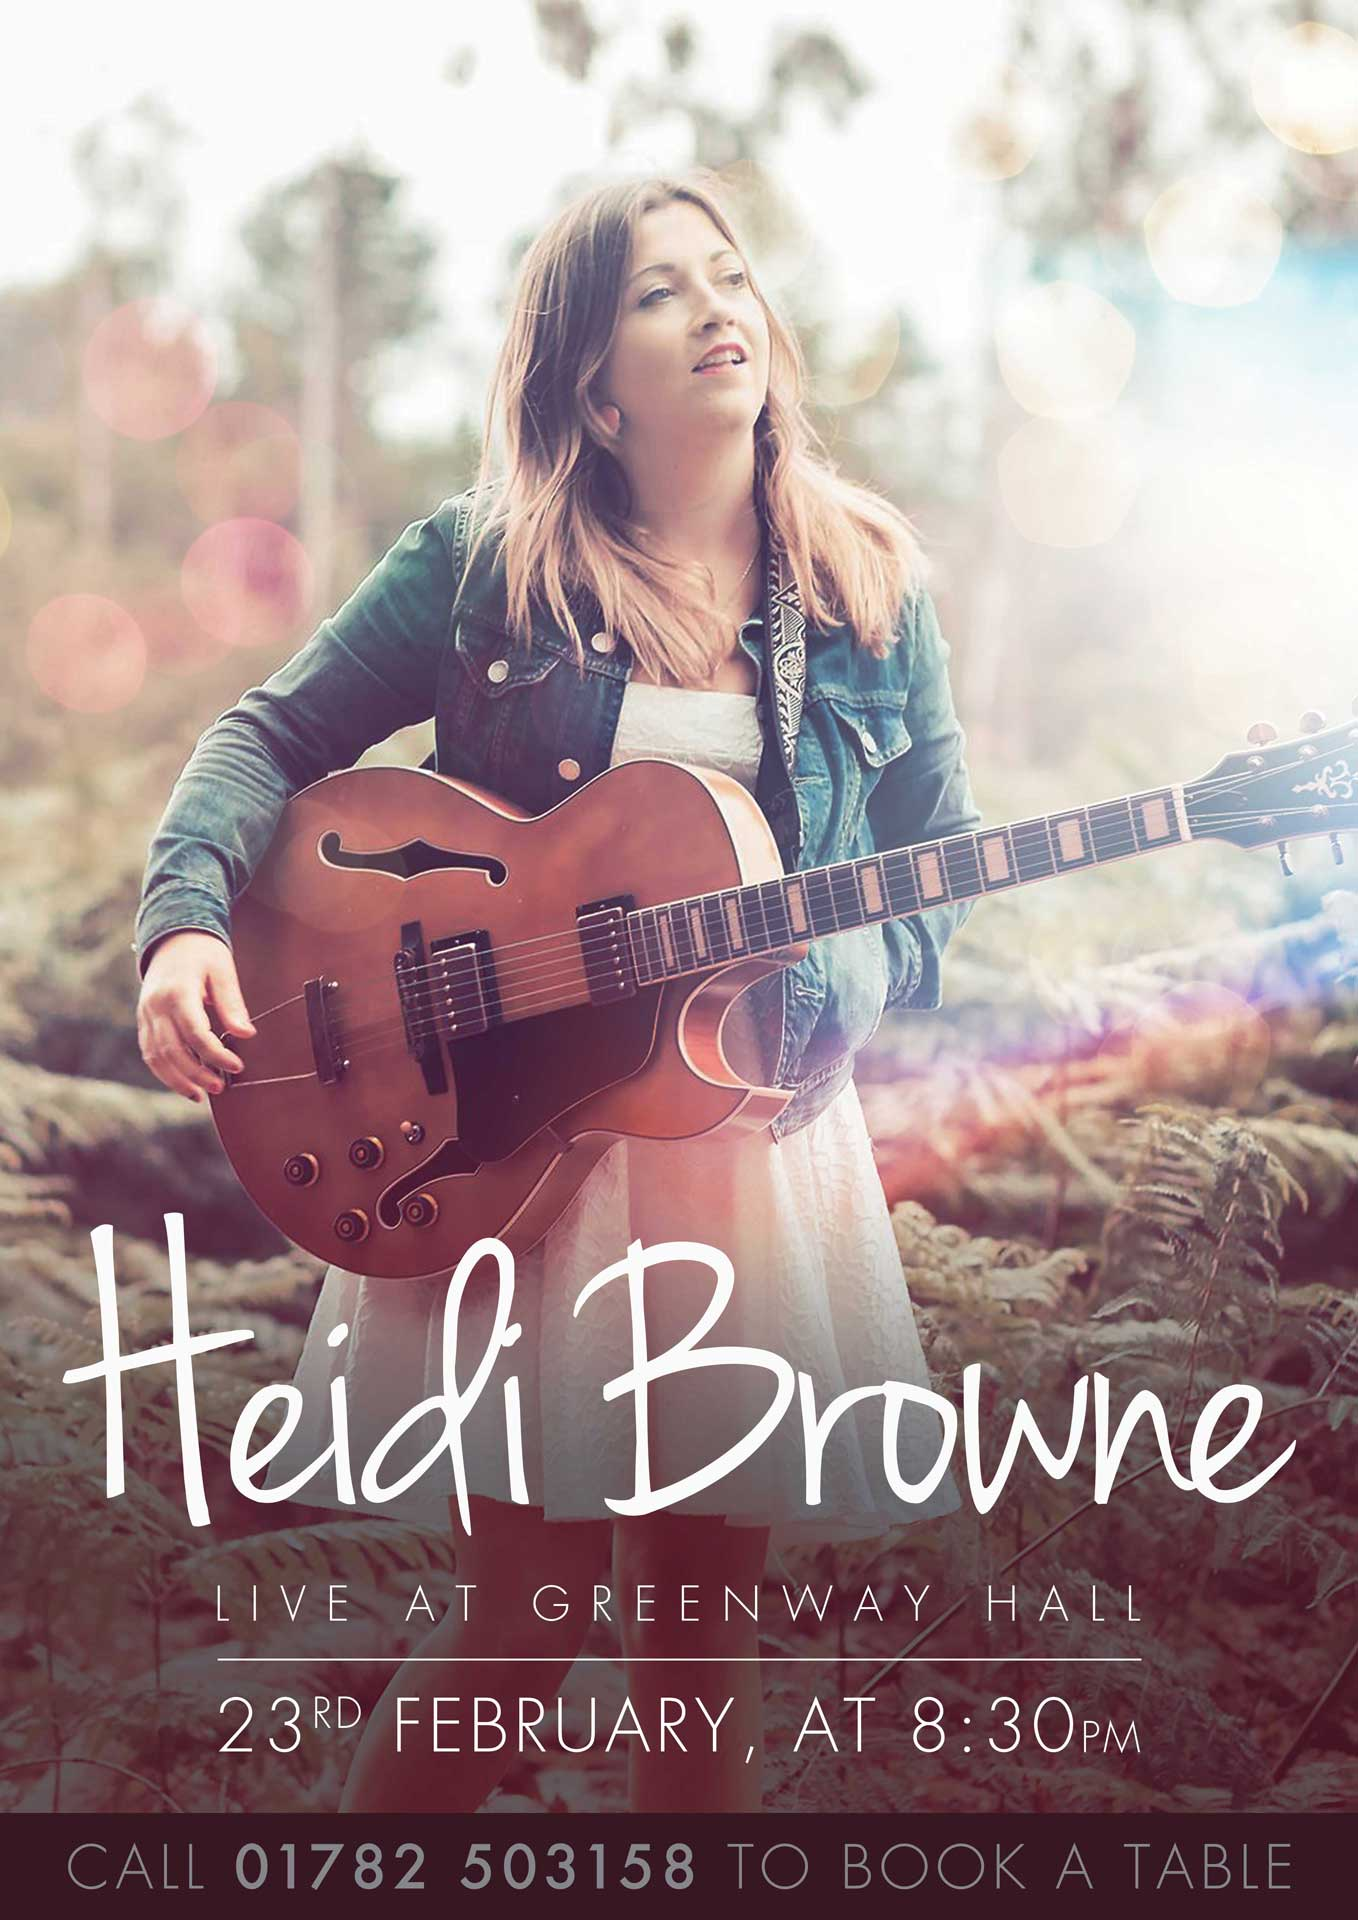 Heidi Browne Live 23 Feb 2018